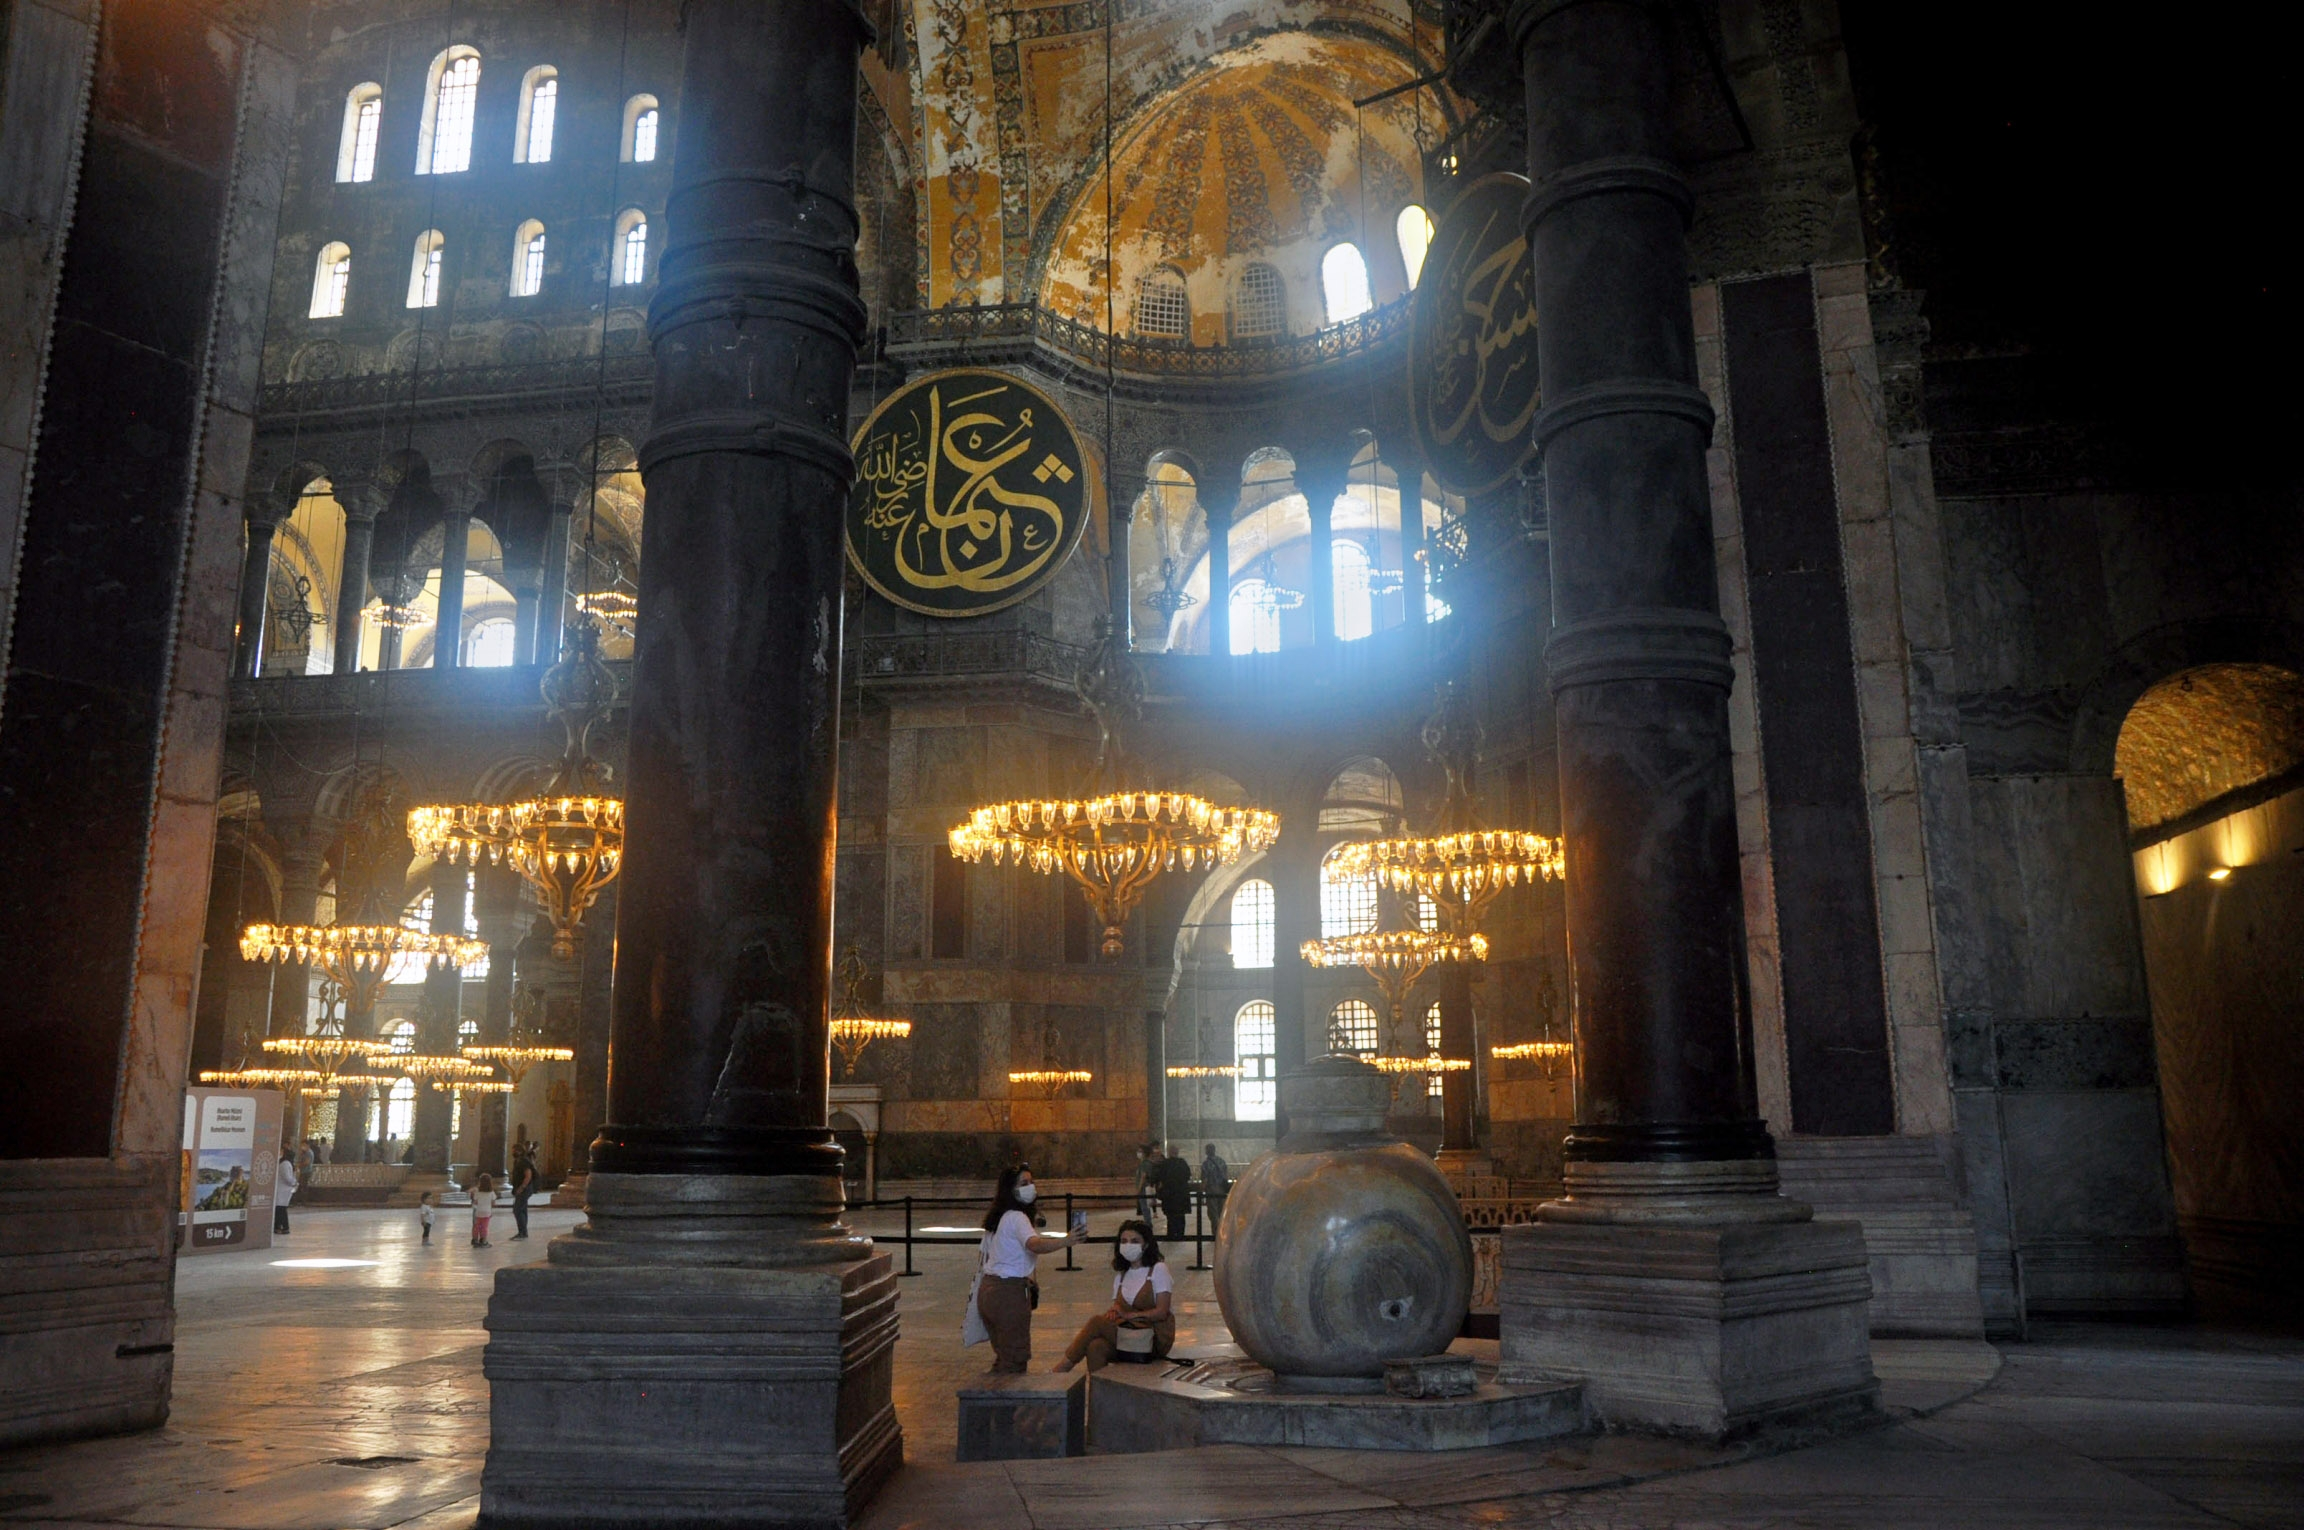 Tourists take in the ornate beauty of the Haghia Sophia dome